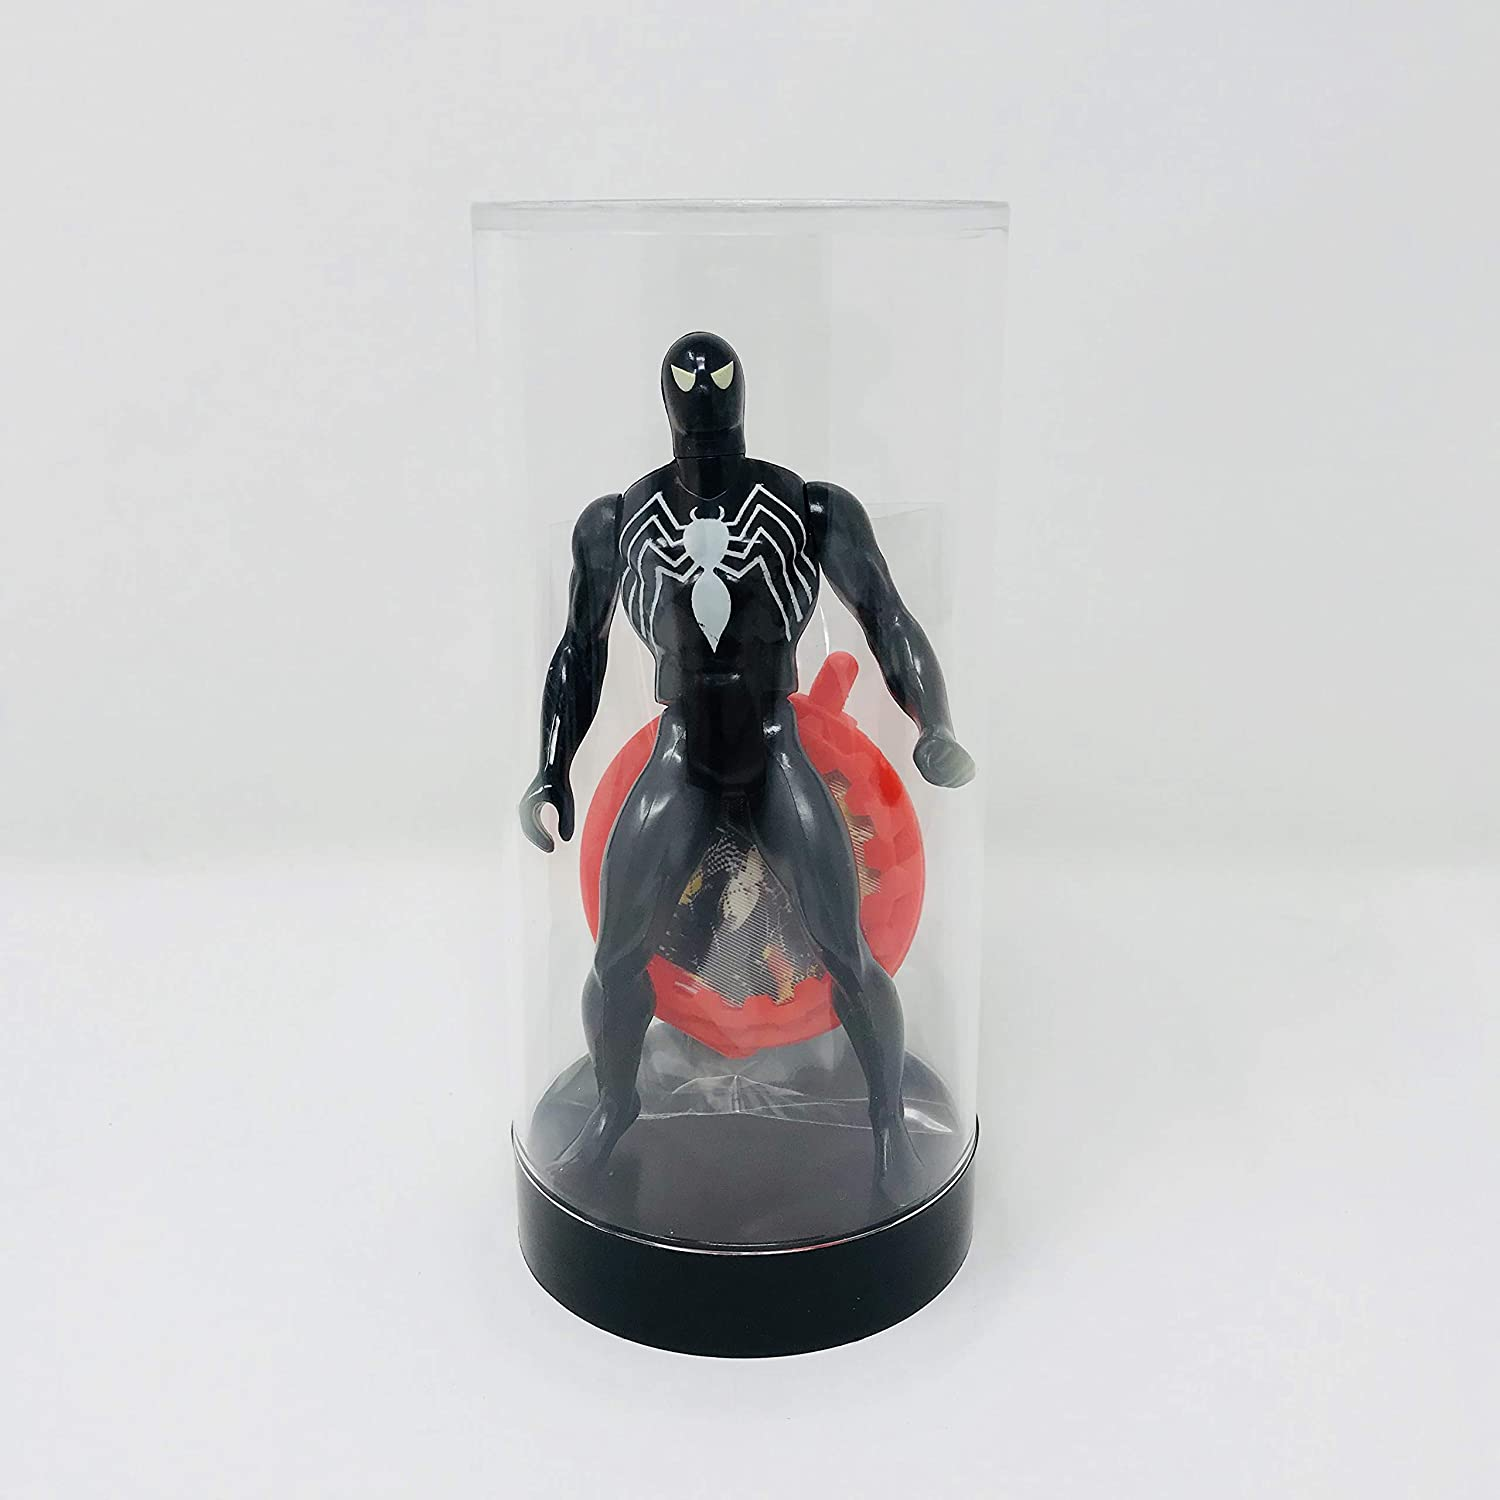 GI Joe and Other Qty of 5 SG/_B00SABOO1M/_US Protech Acrylic Cylinder Display Case for Star Wars